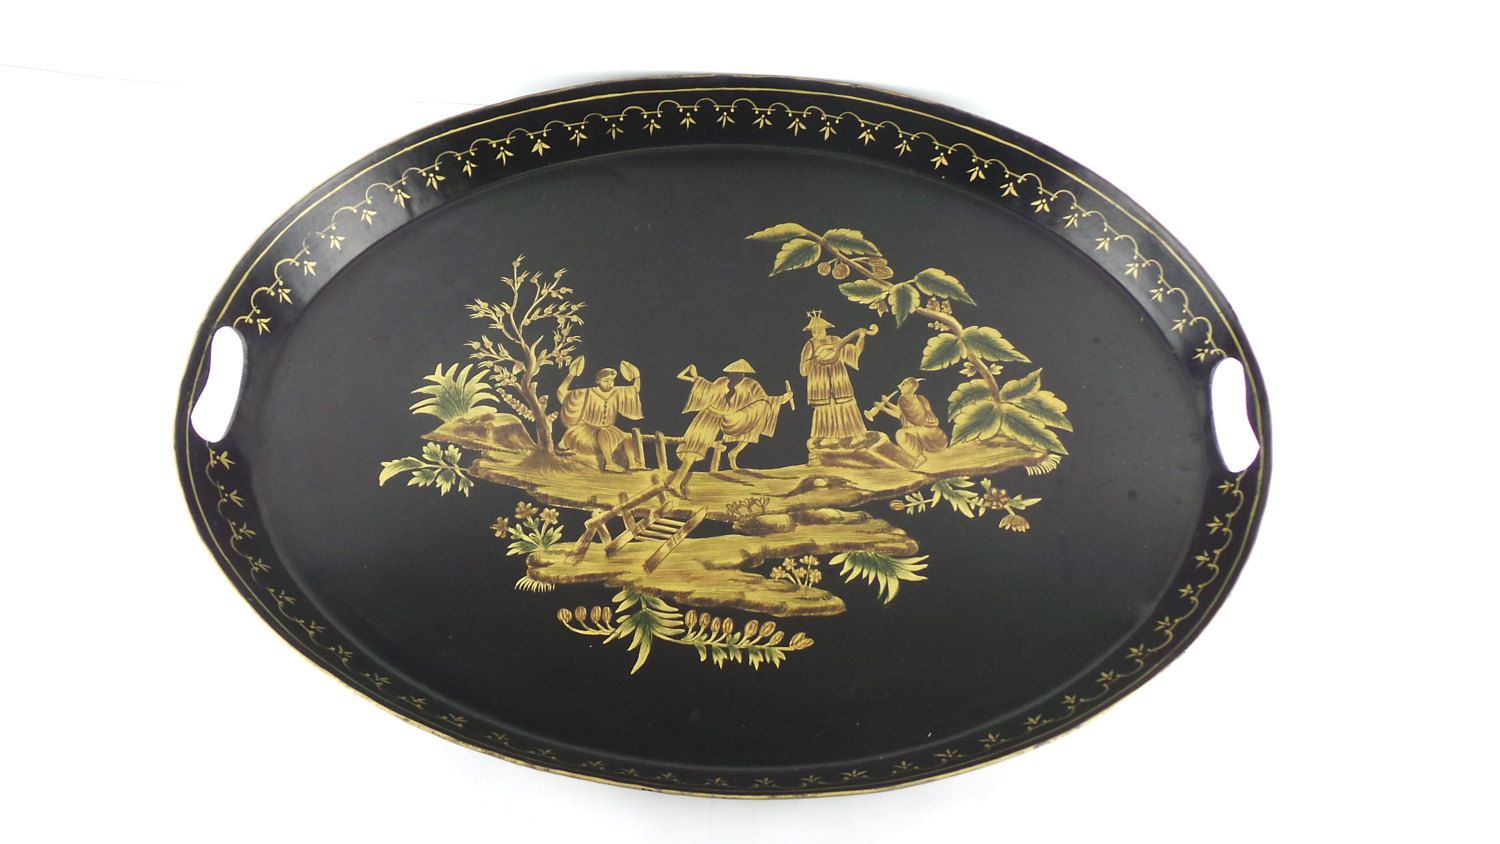 Decorative Trays Large Asian Tray Tabletop Size Tray Decorative Tray